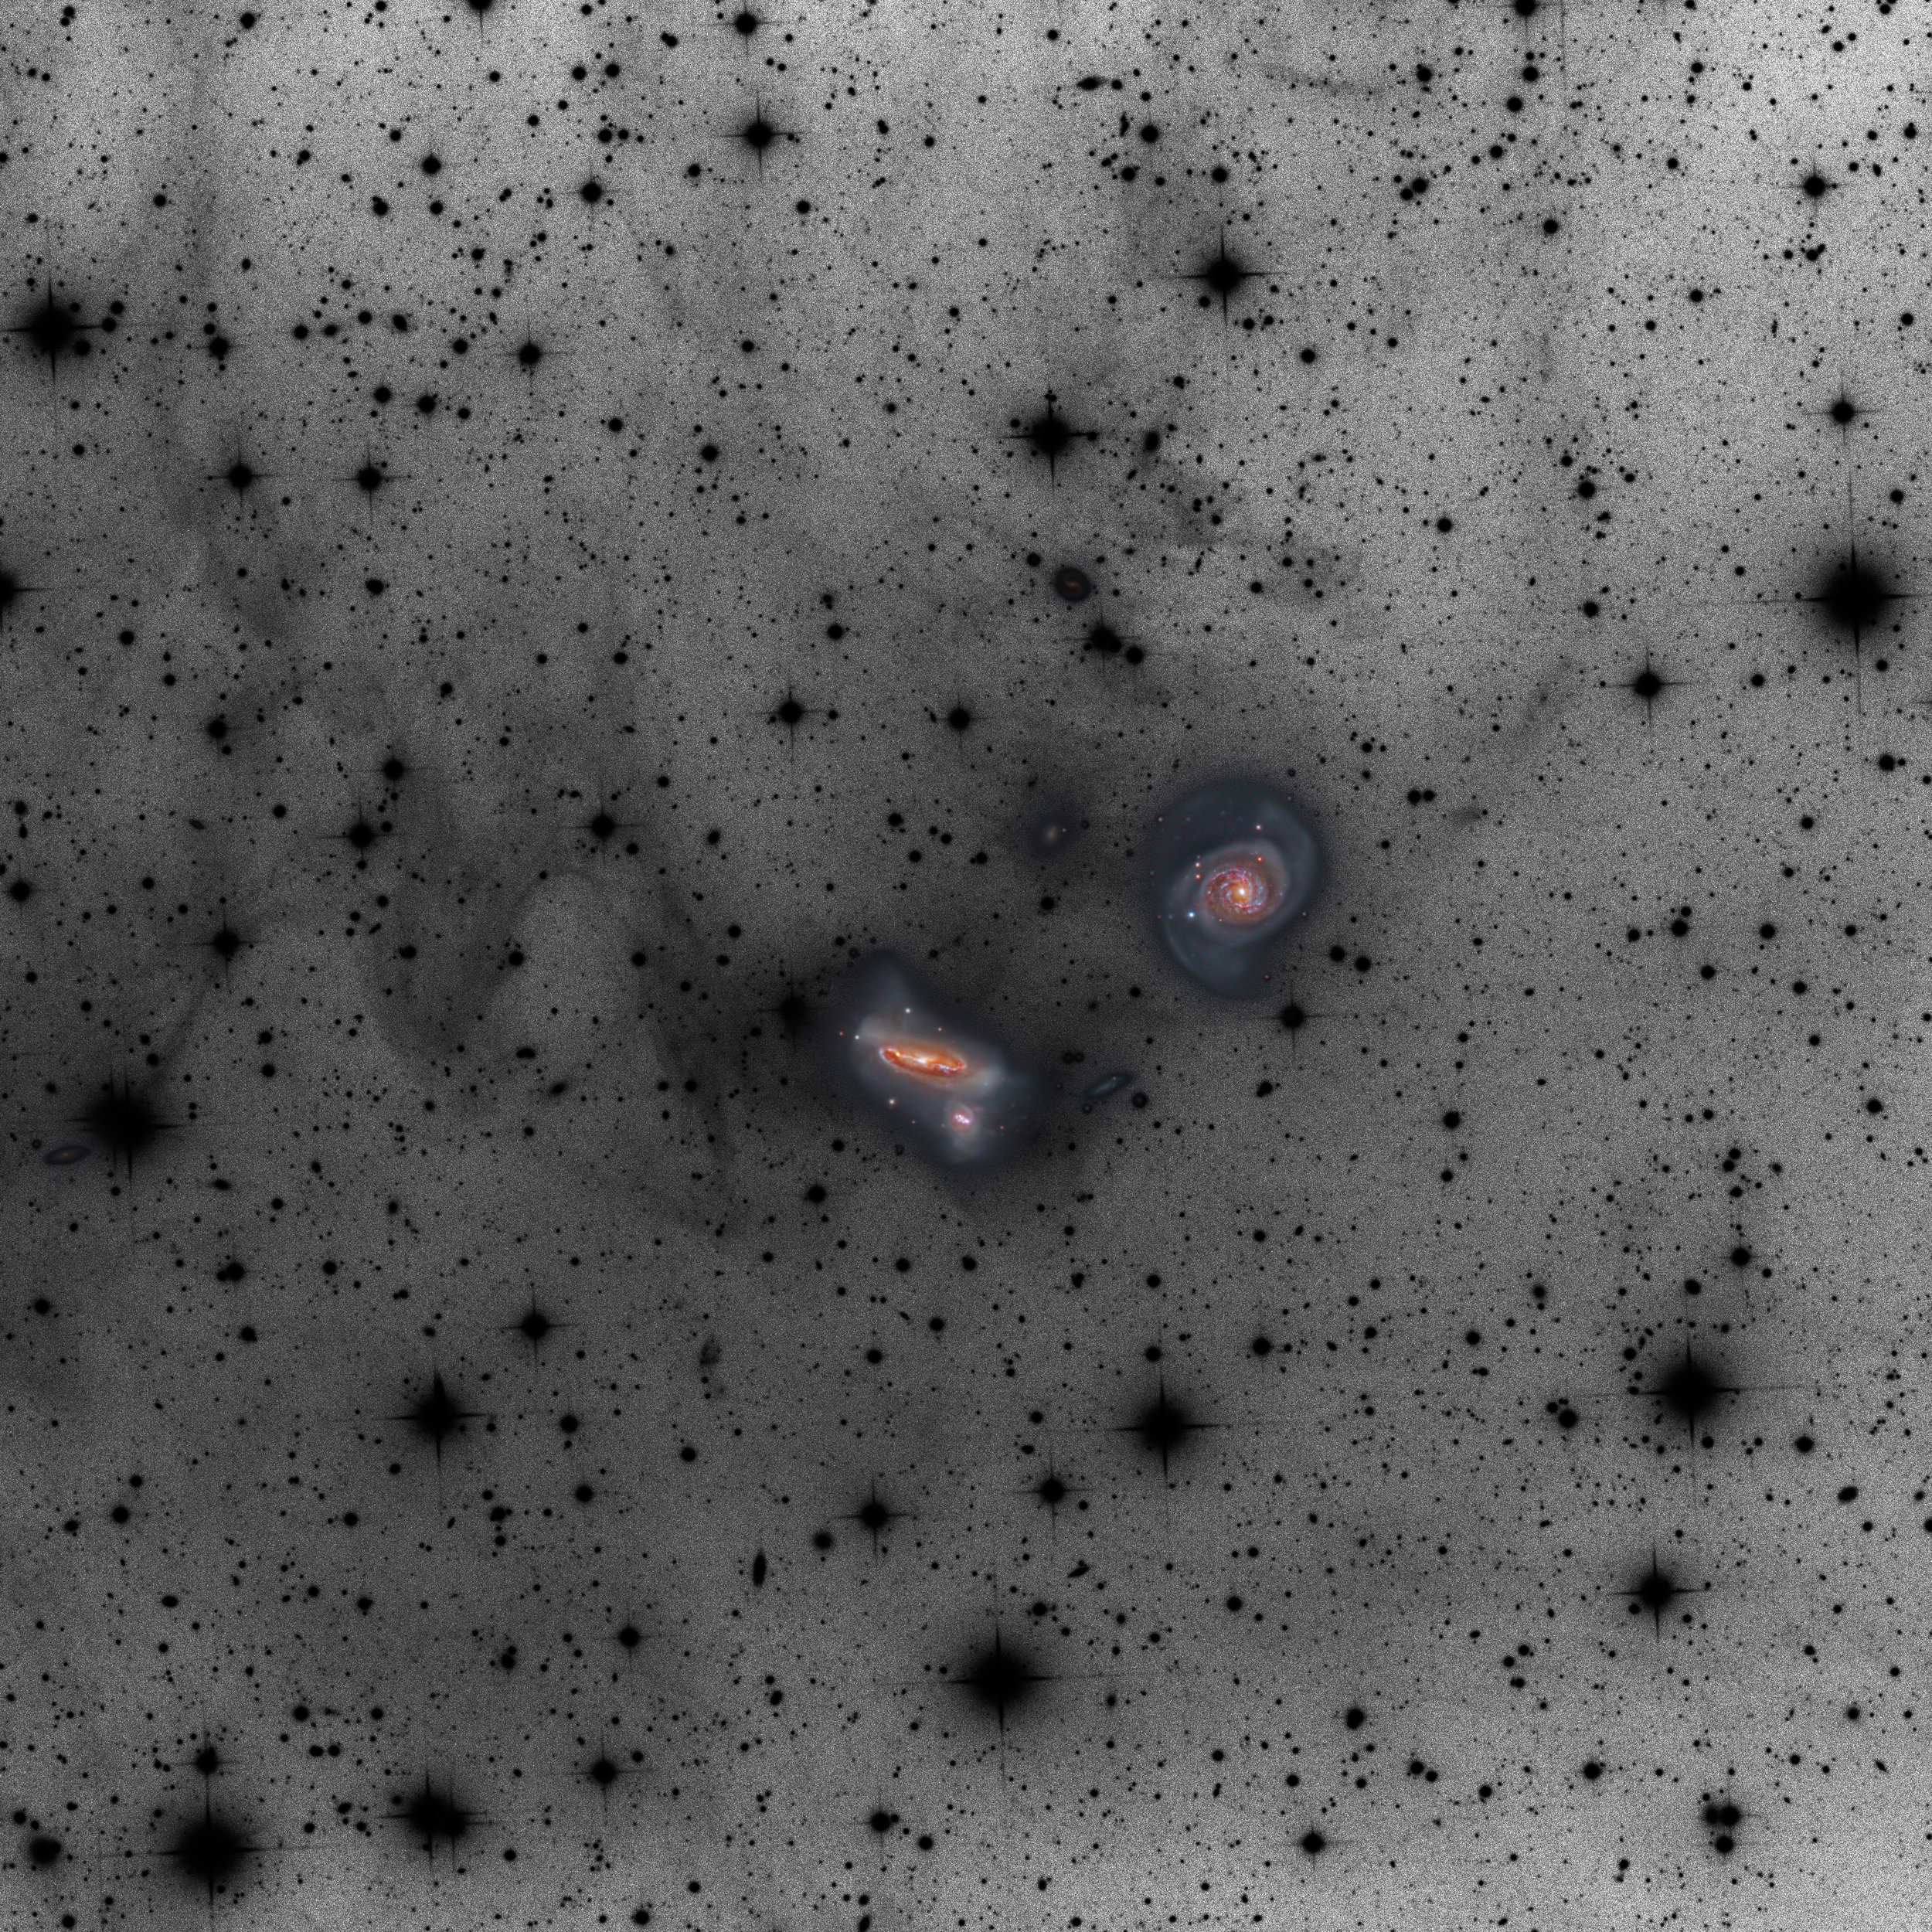 Mean ngc7771 Scaled.jpg